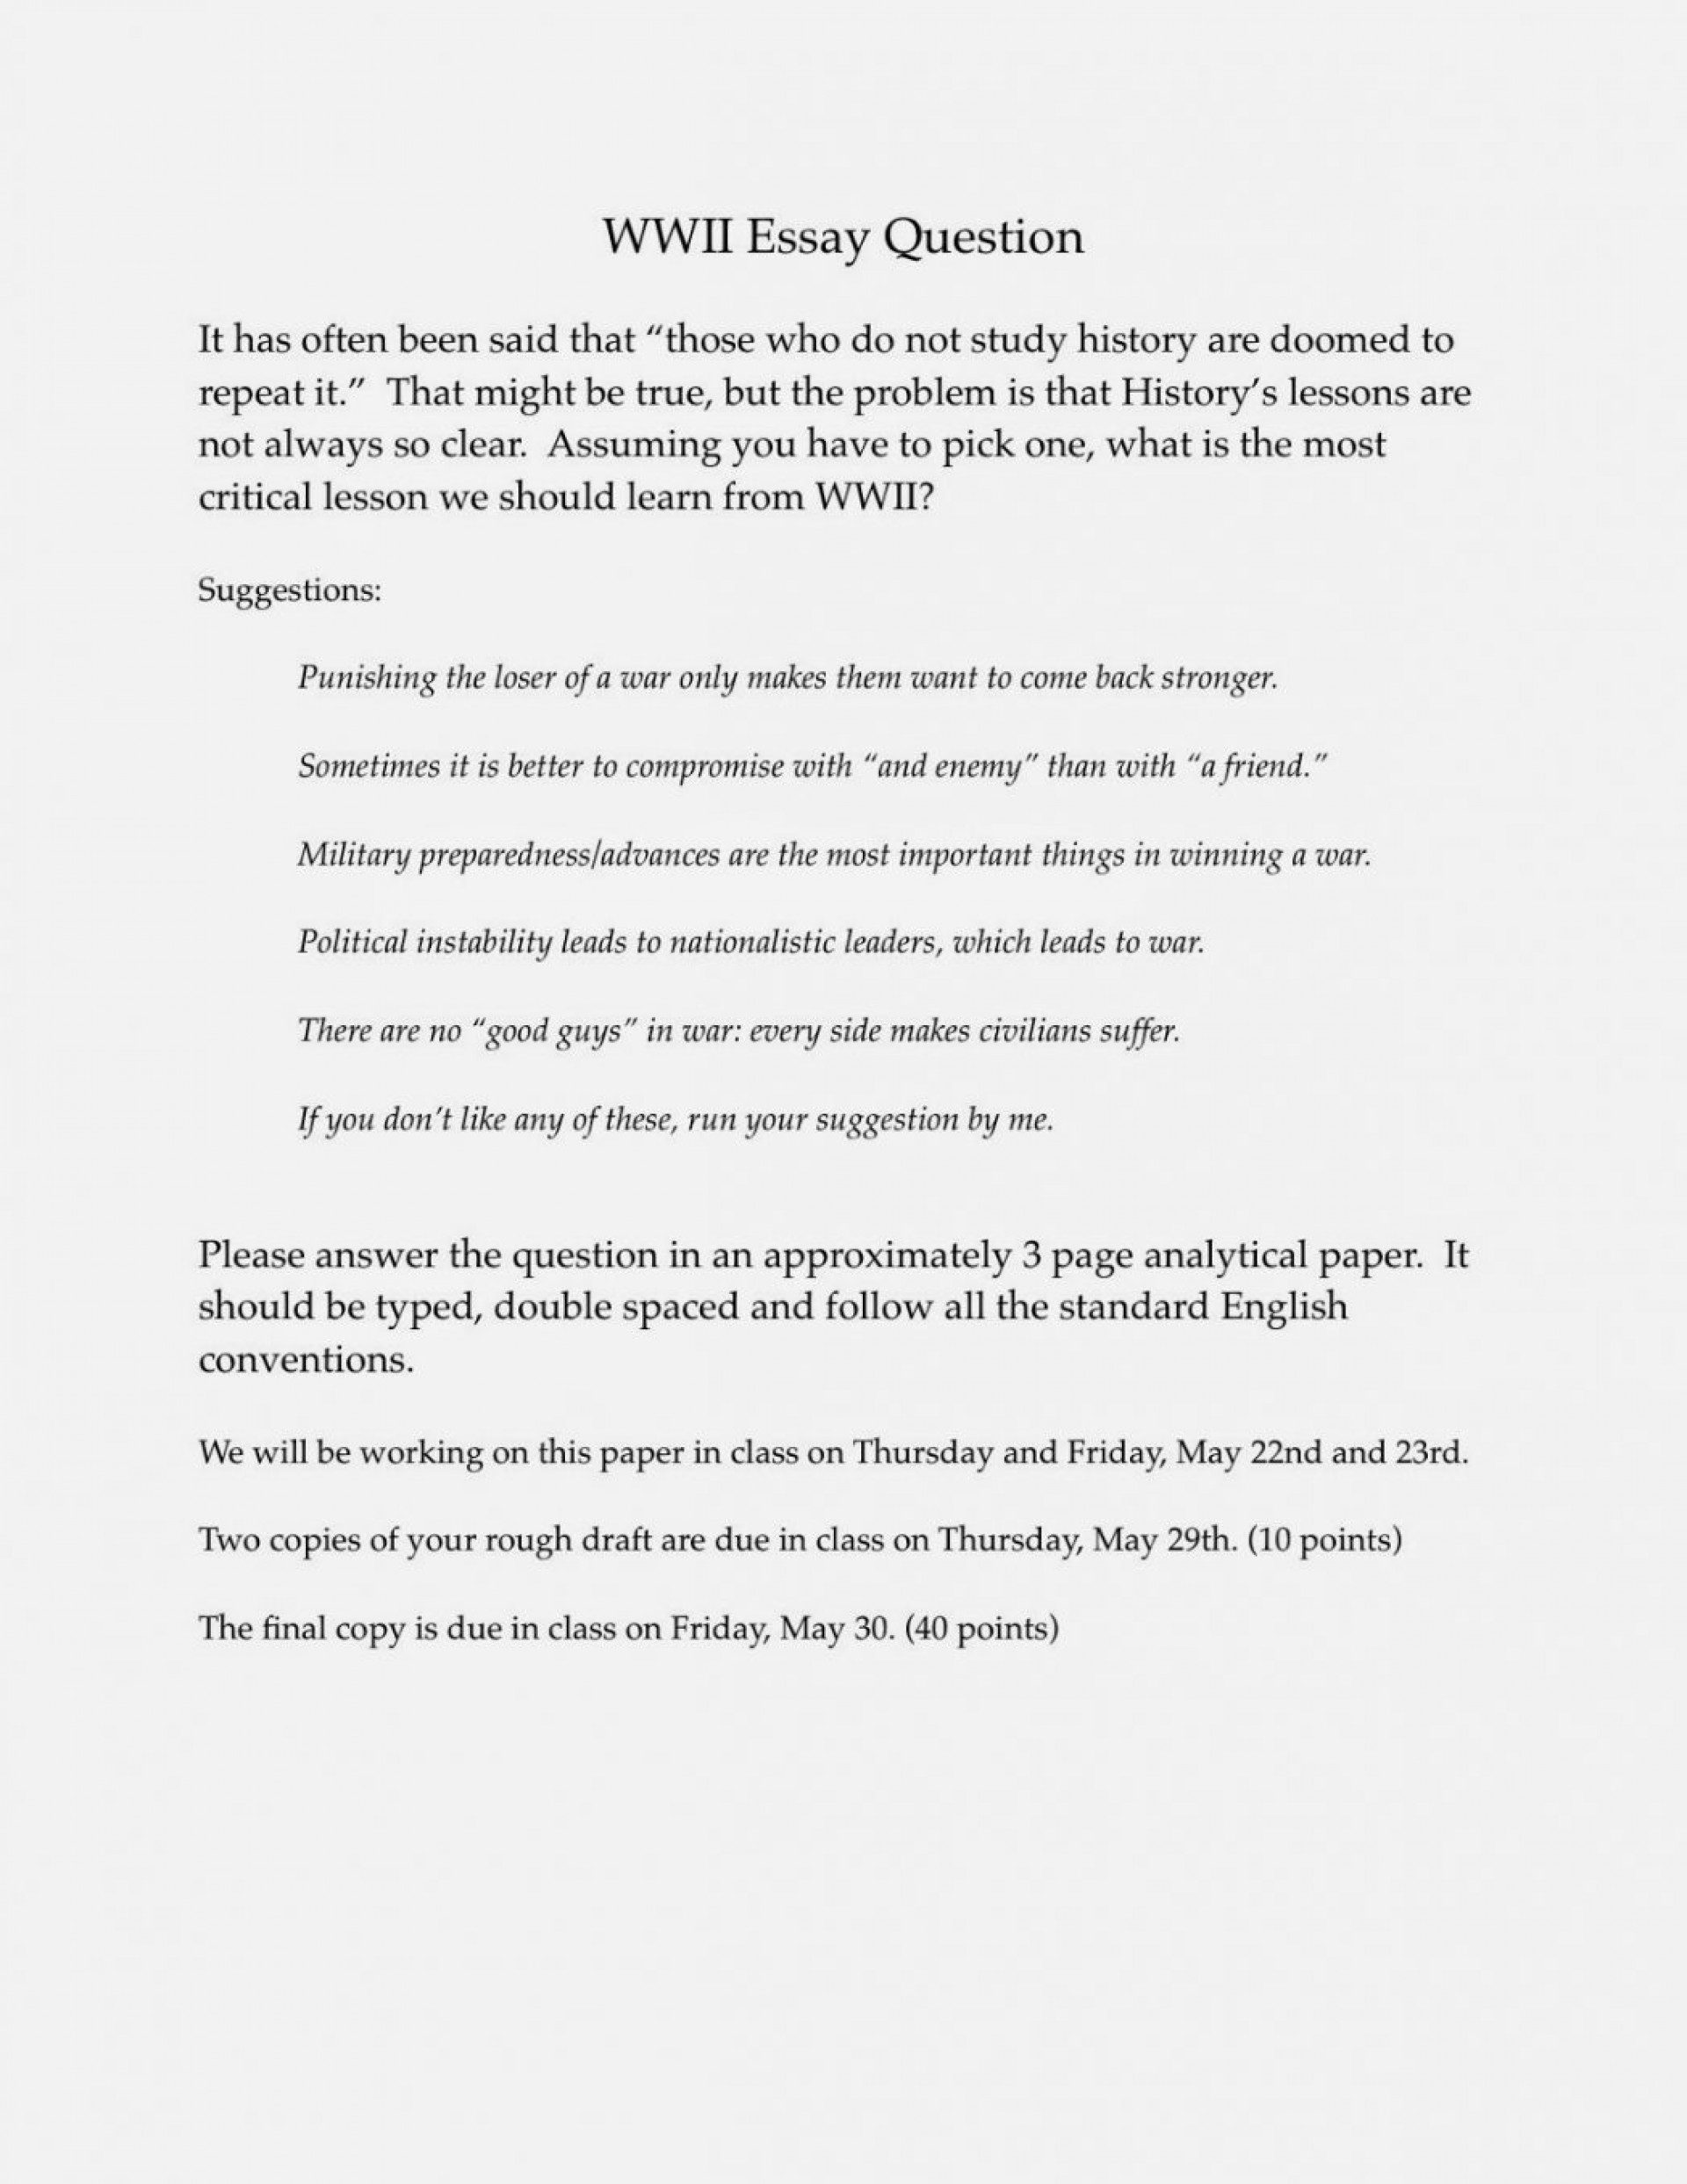 002 History Of Basketball Essay Essaycover Letter Template For Tsi Writing Scores Wwiies Prompts 1048x1357 Wondrous In English Hindi Examples 1920